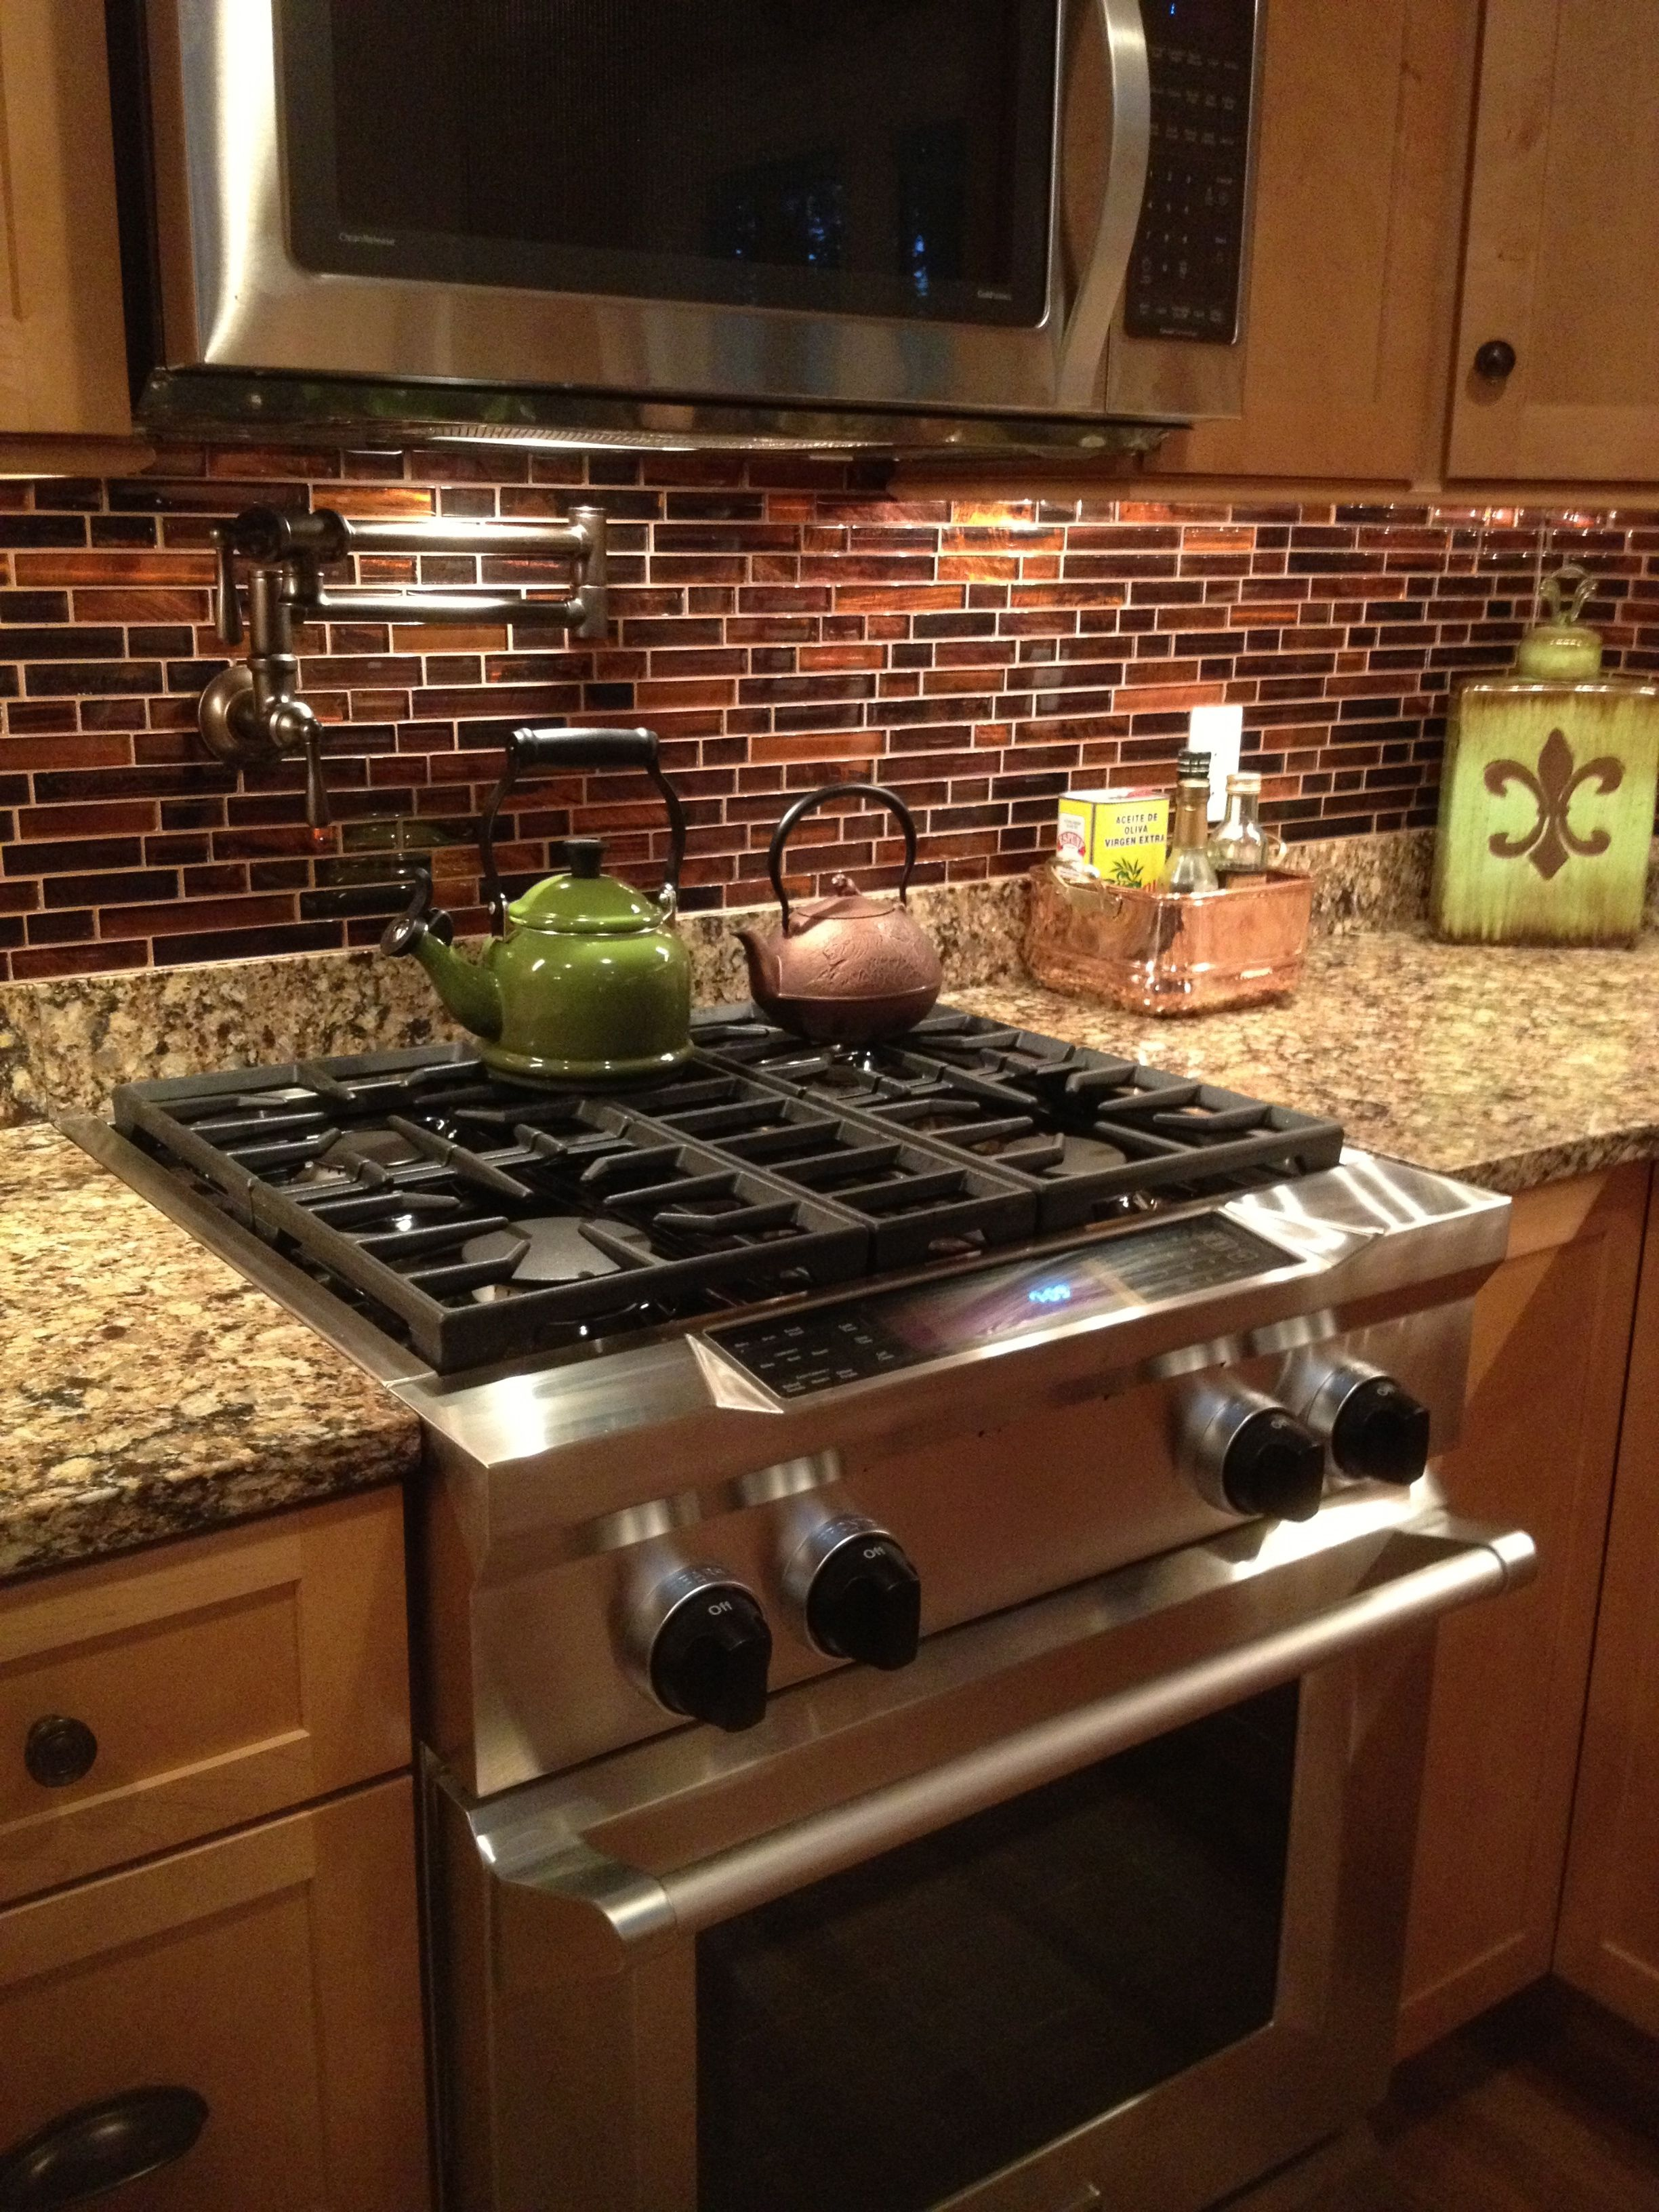 - Copper Backsplash, Cambria Quartz, Maple Cabinetry, Bronze Pot